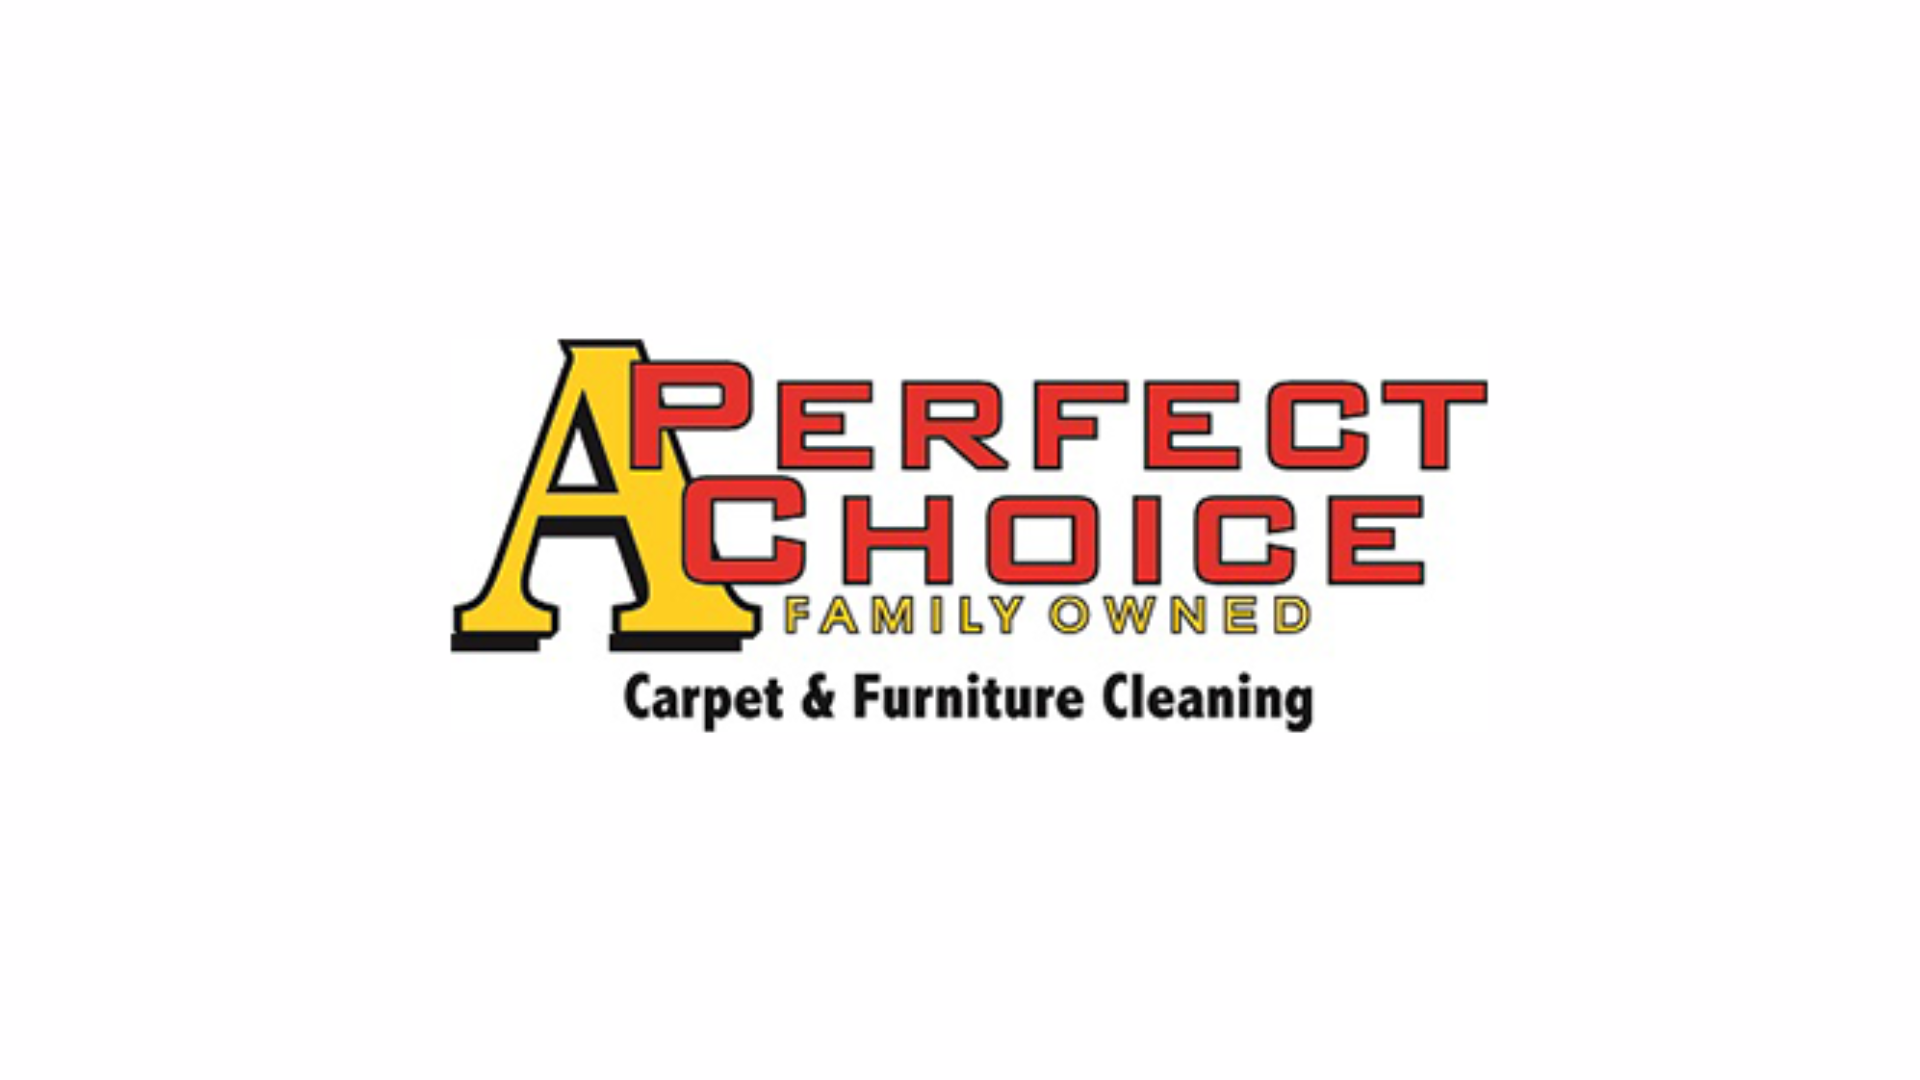 A Perfect Choice Carpet & Furniture Cleaning